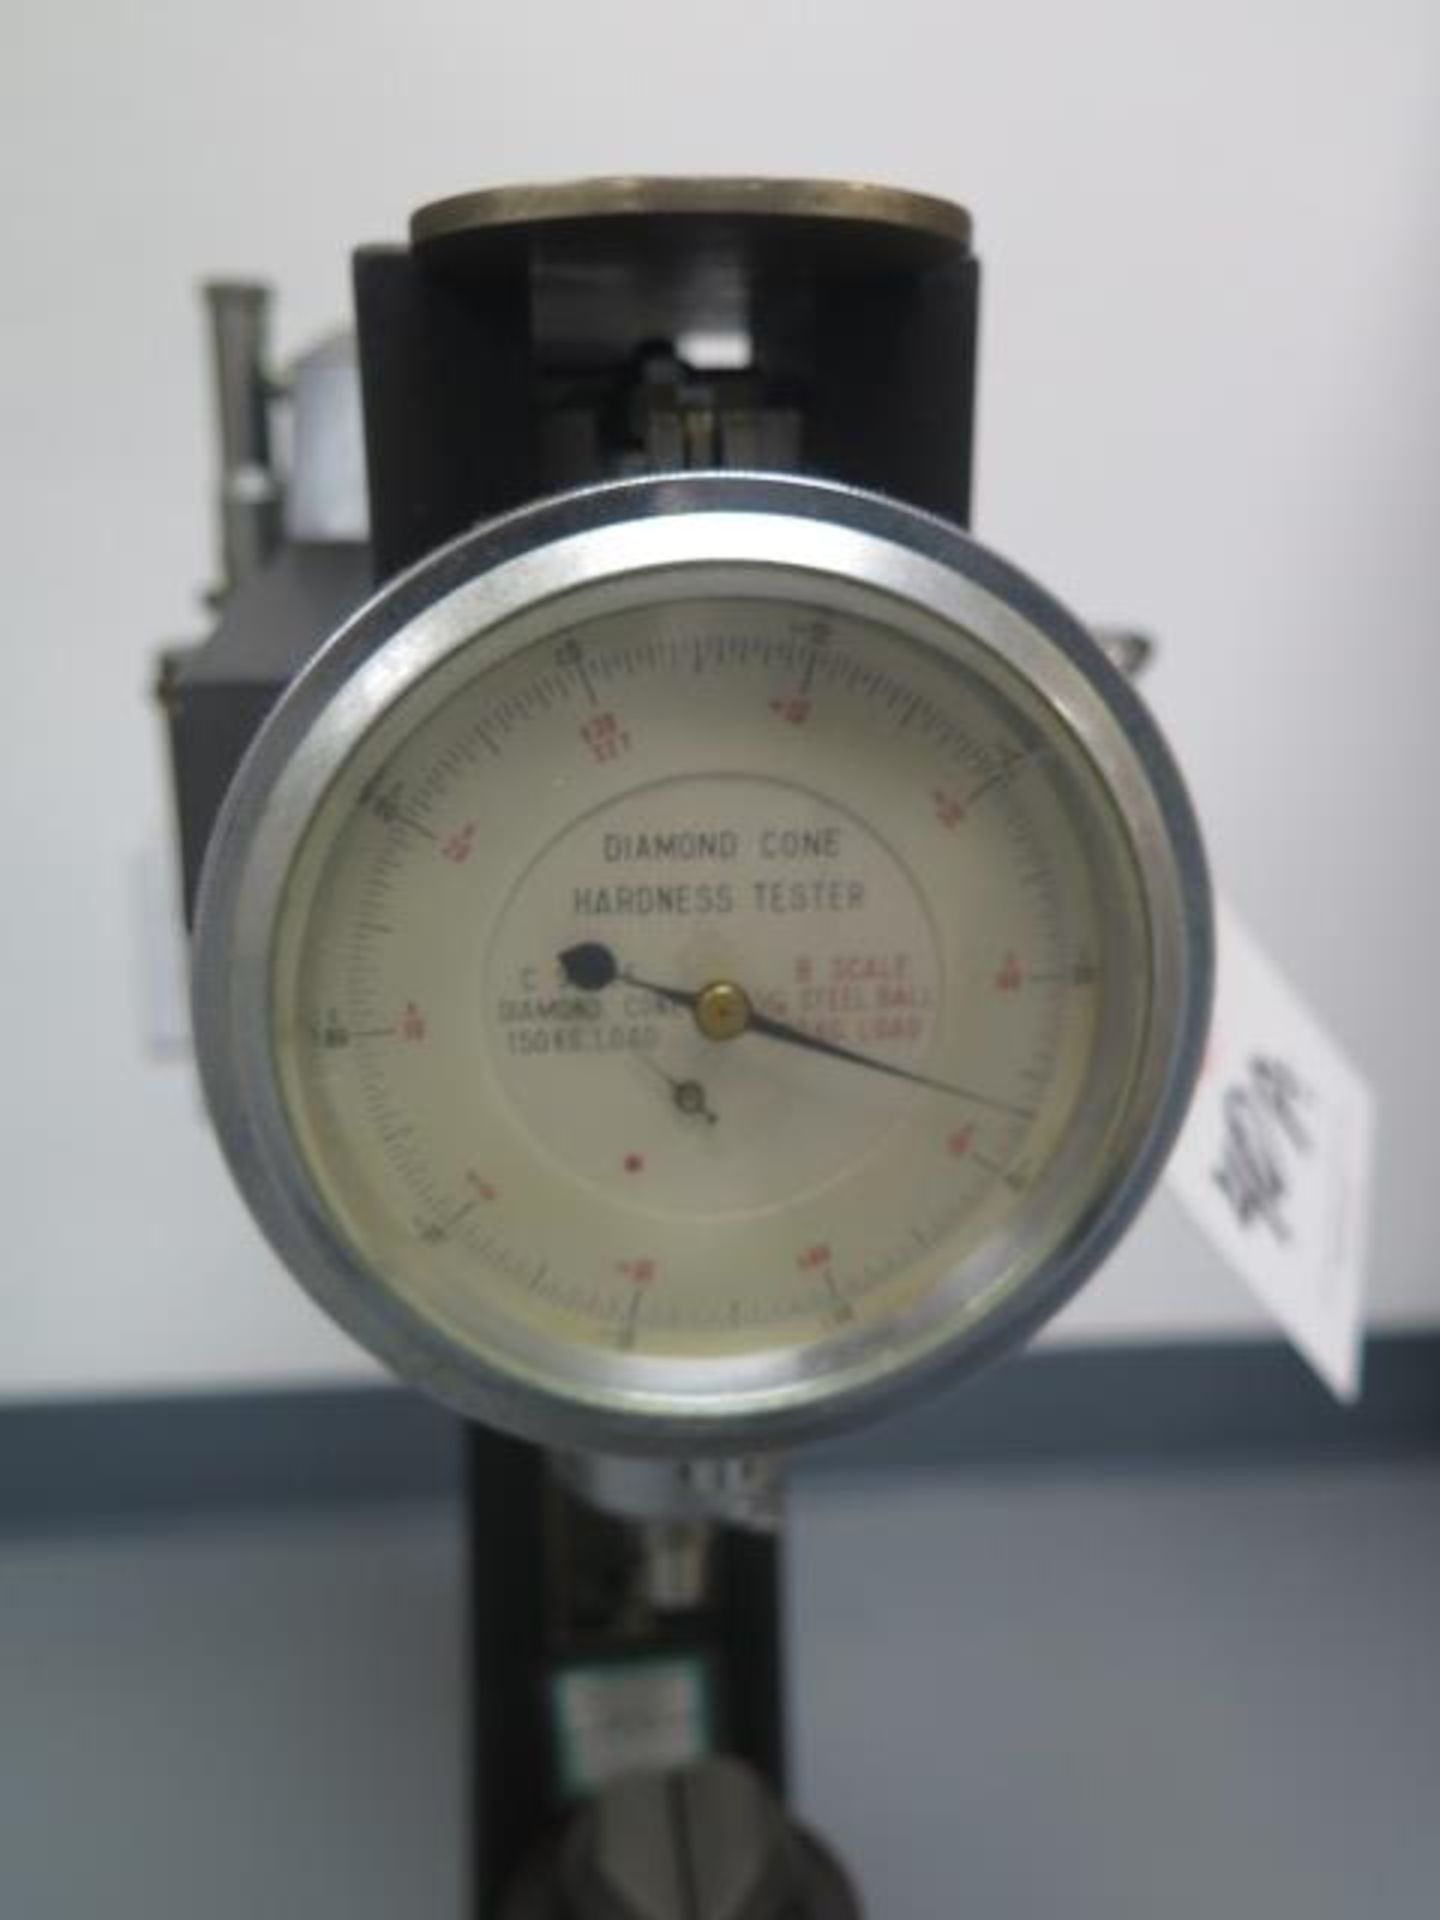 Rockwell Hardness Tester w/ Accessories (SOLD AS-IS - NO WARRANTY) - Image 3 of 9